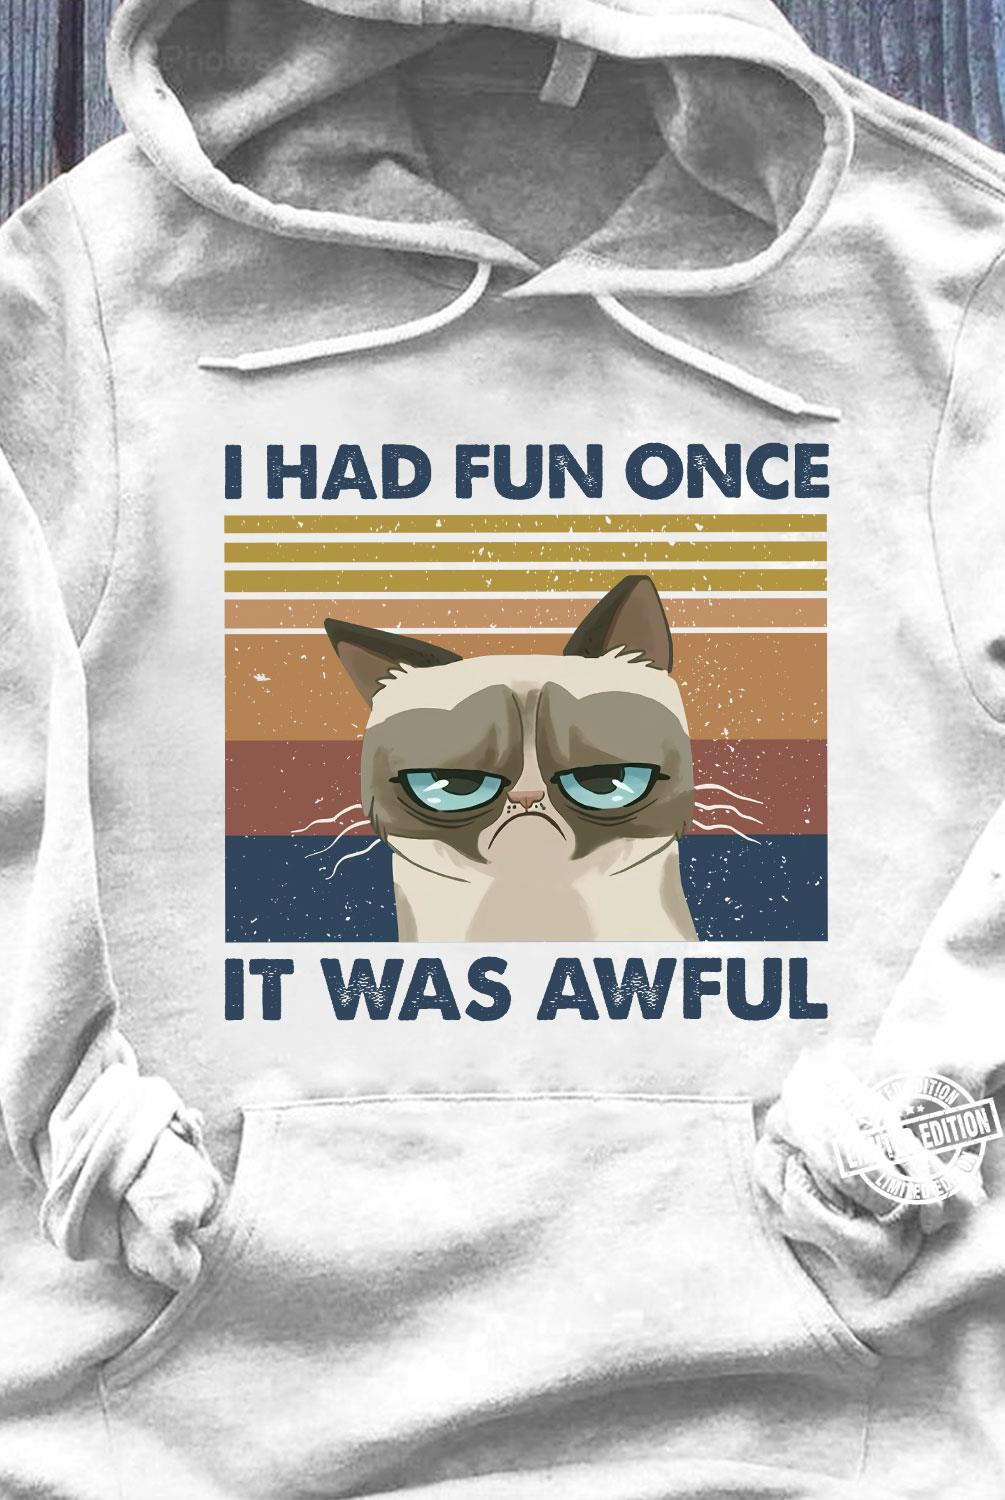 I had fun once it was awful shirt